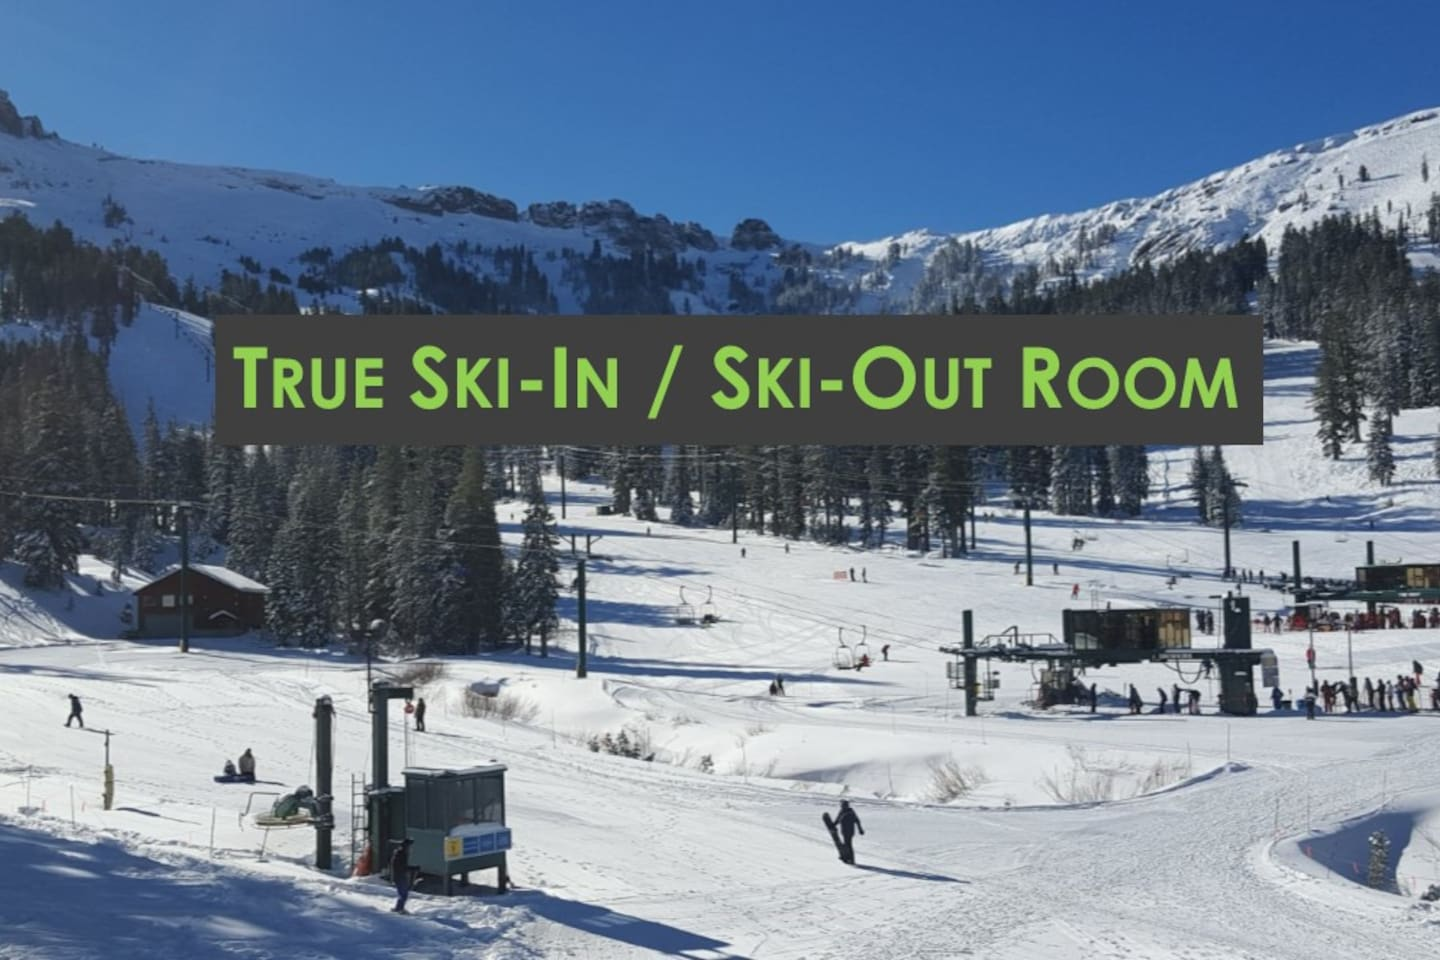 True Ski-In / Ski-Out Room.  Literally Just Steps to the Lifts.